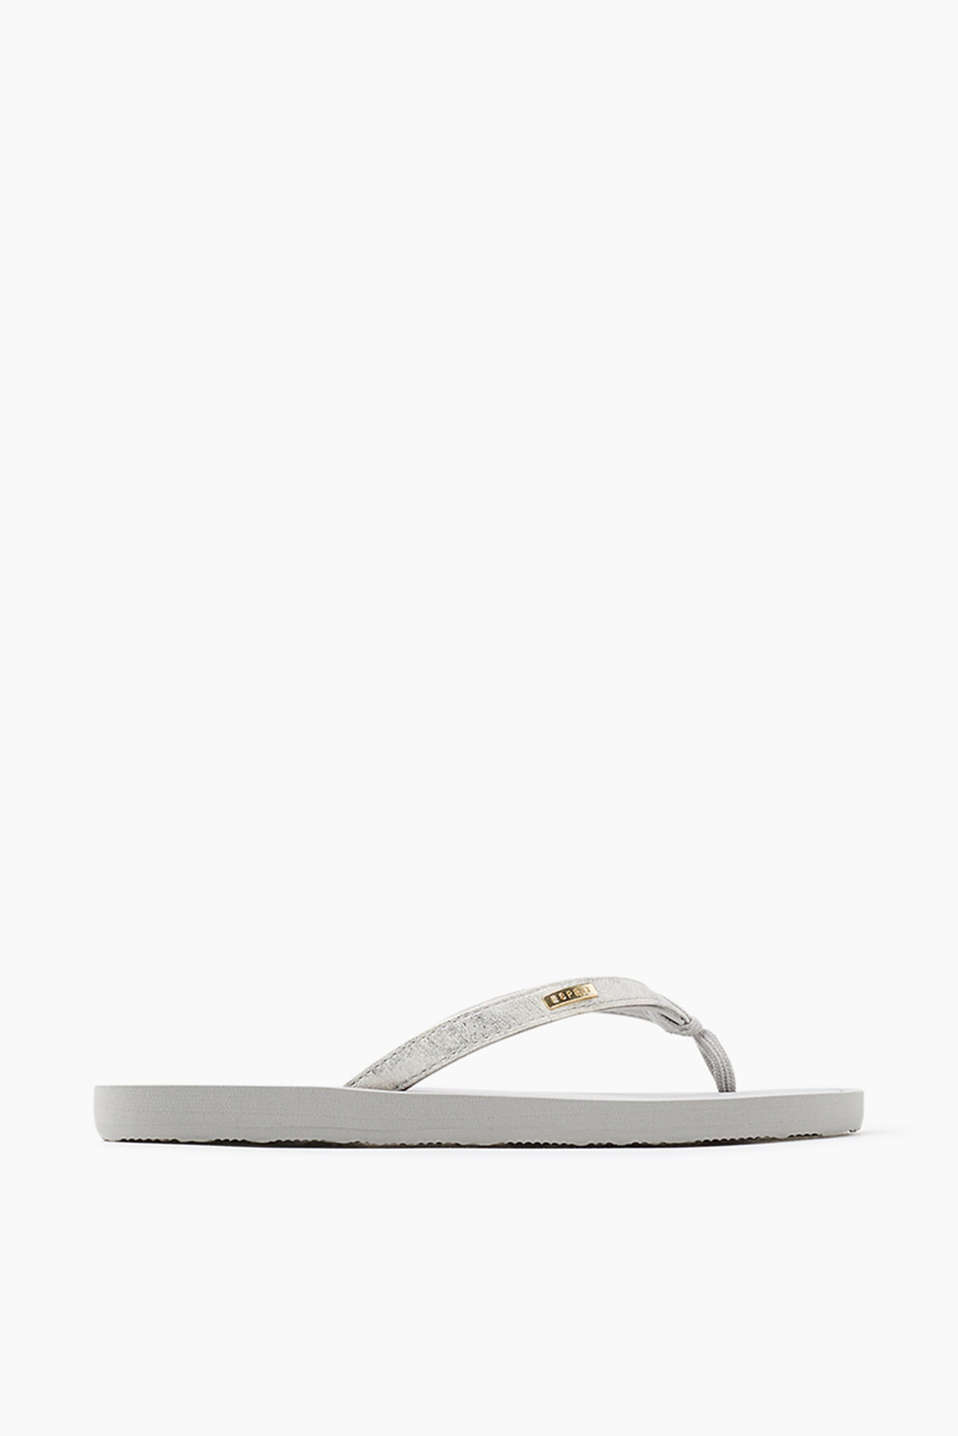 City slip slops with straps in a metallic antique finish